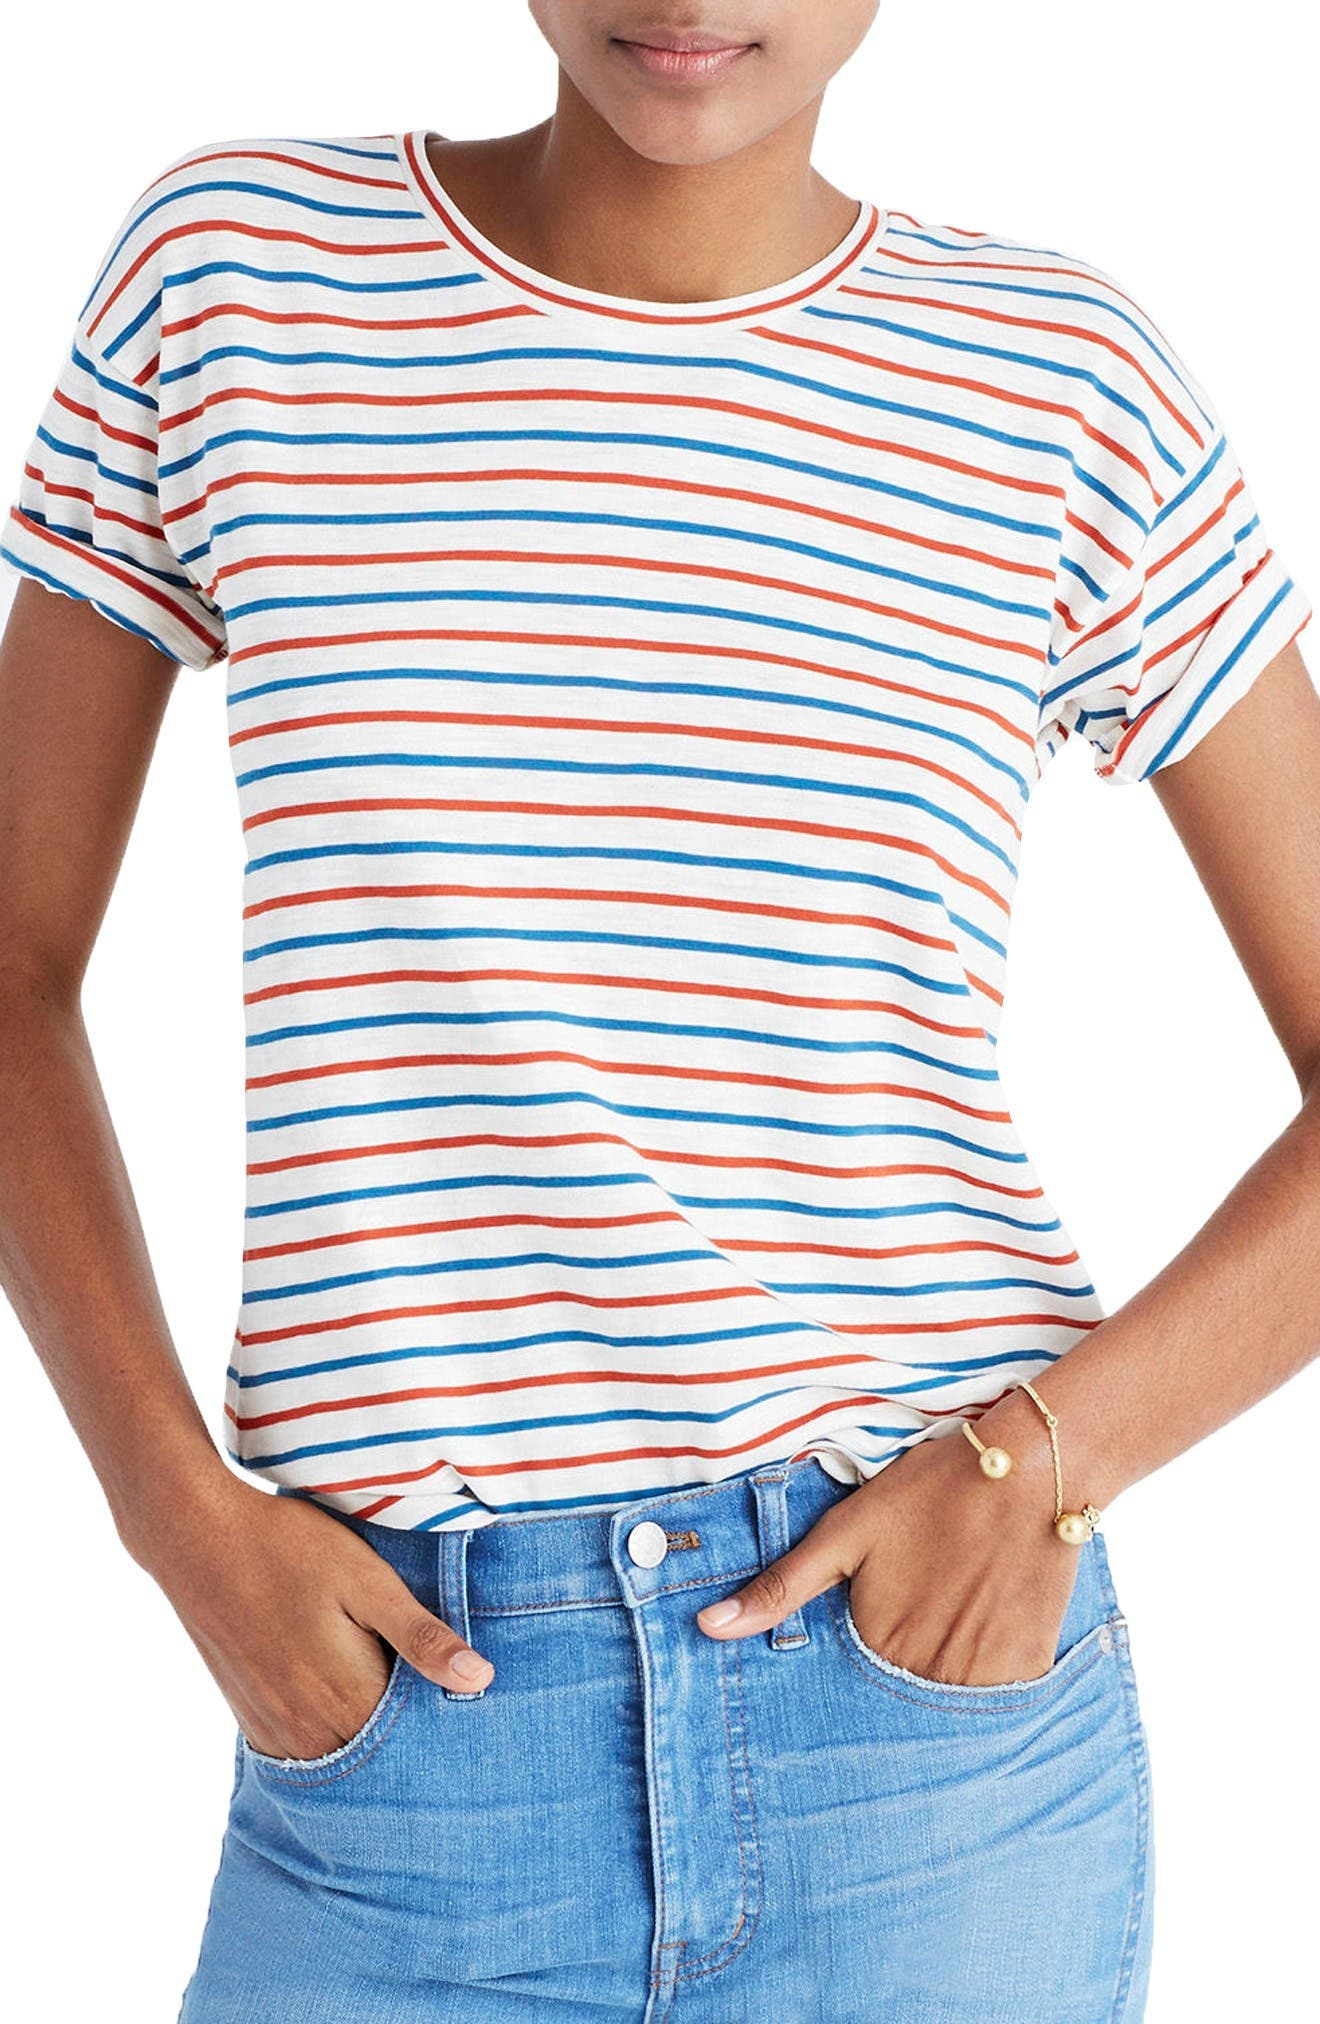 Whisper Raphael Stripe Tee,                             Alternate thumbnail 3, color,                             Bright Ivory